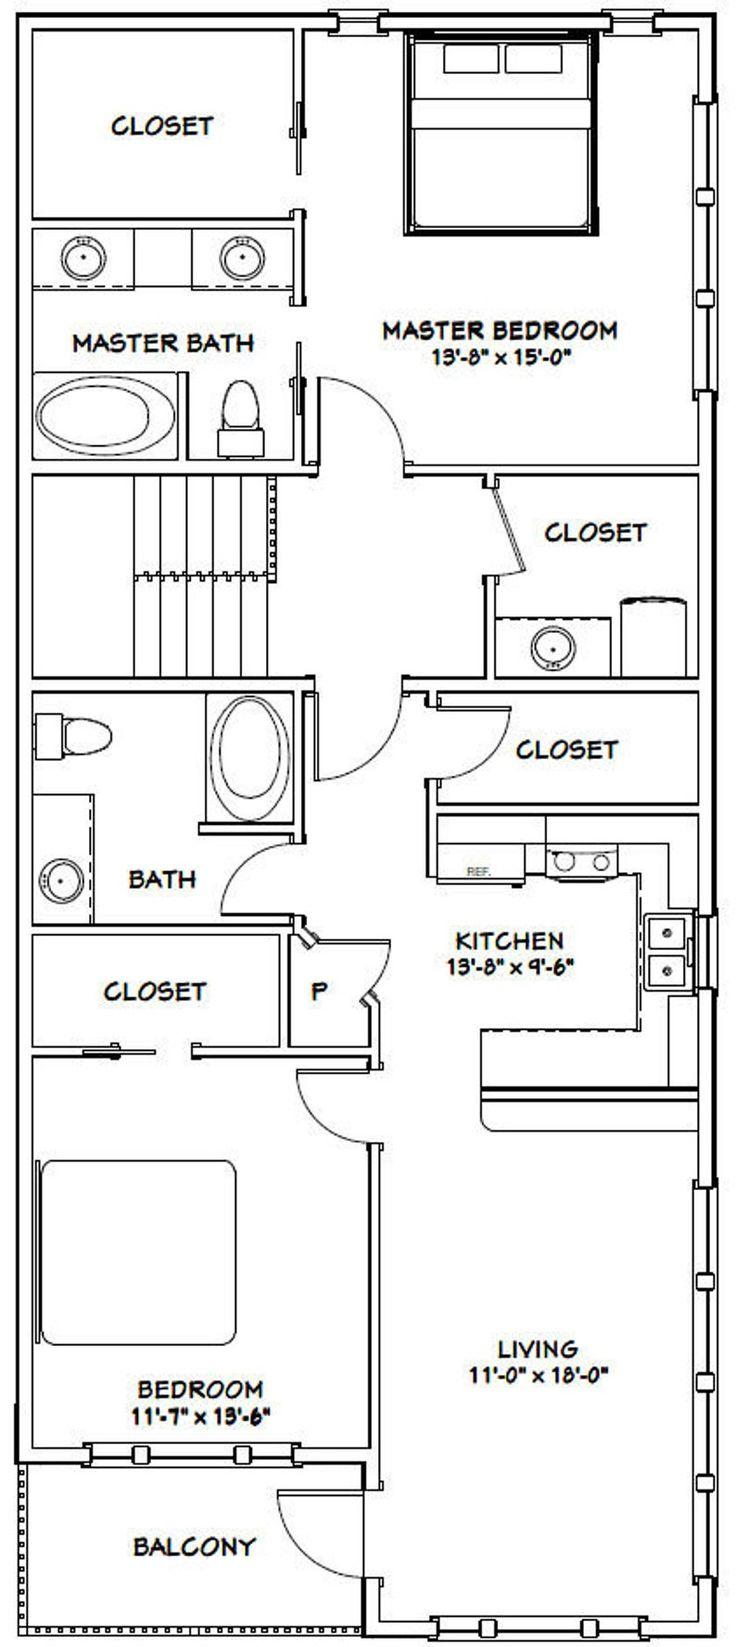 60x50 House 2Bedroom 2.5Bath 1,694 sq ft PDF